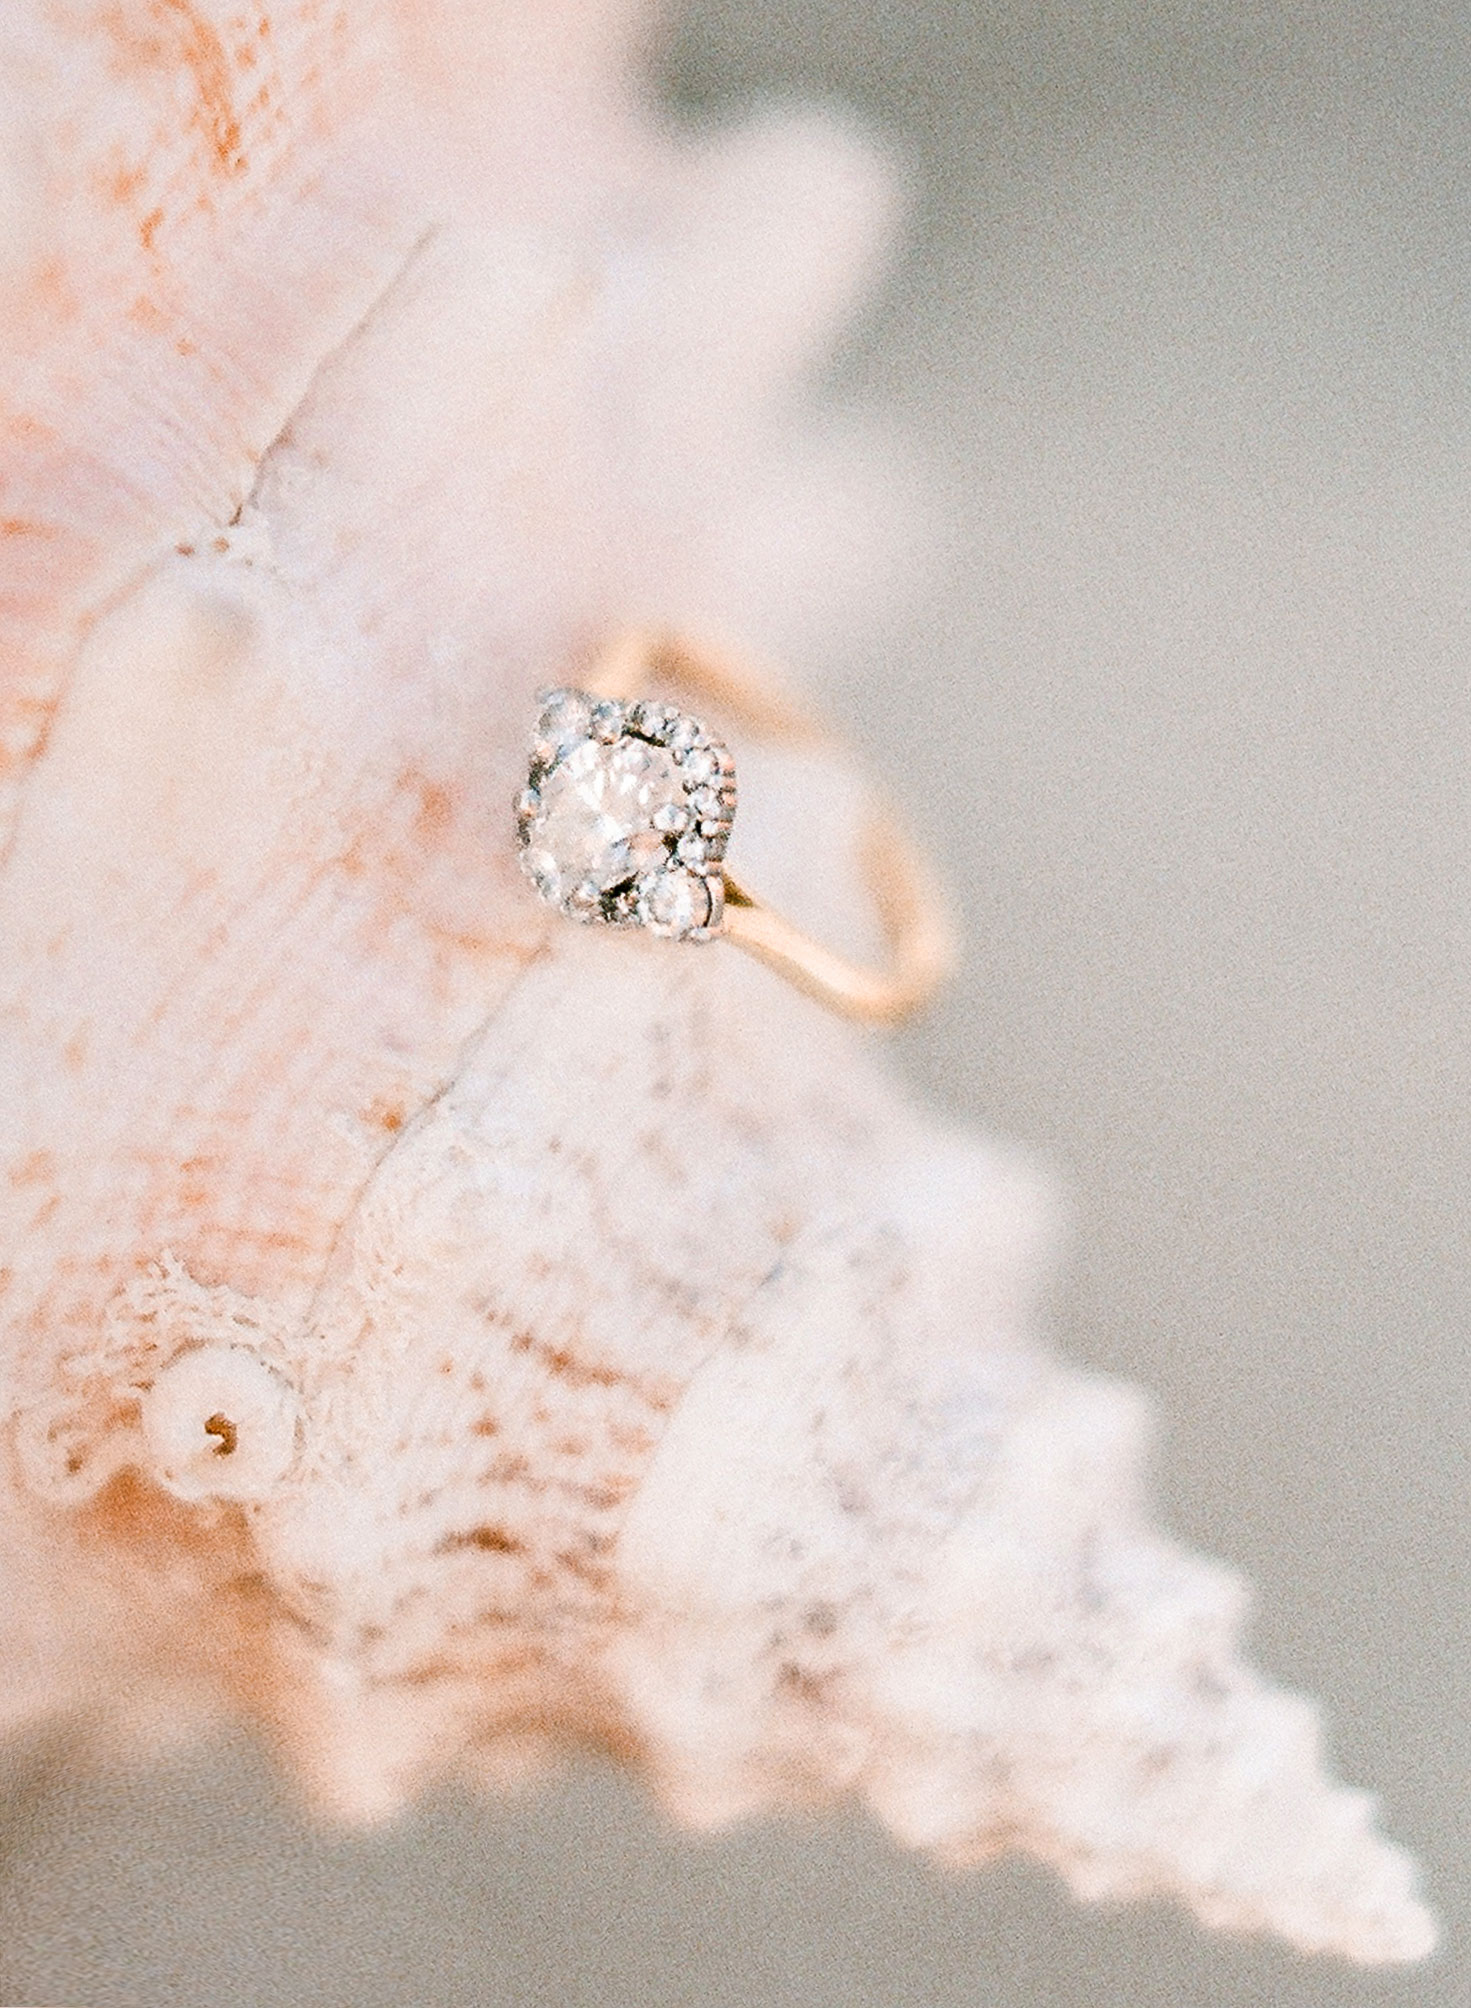 Should You Bring Your Engagement Ring on Your Honeymoon?